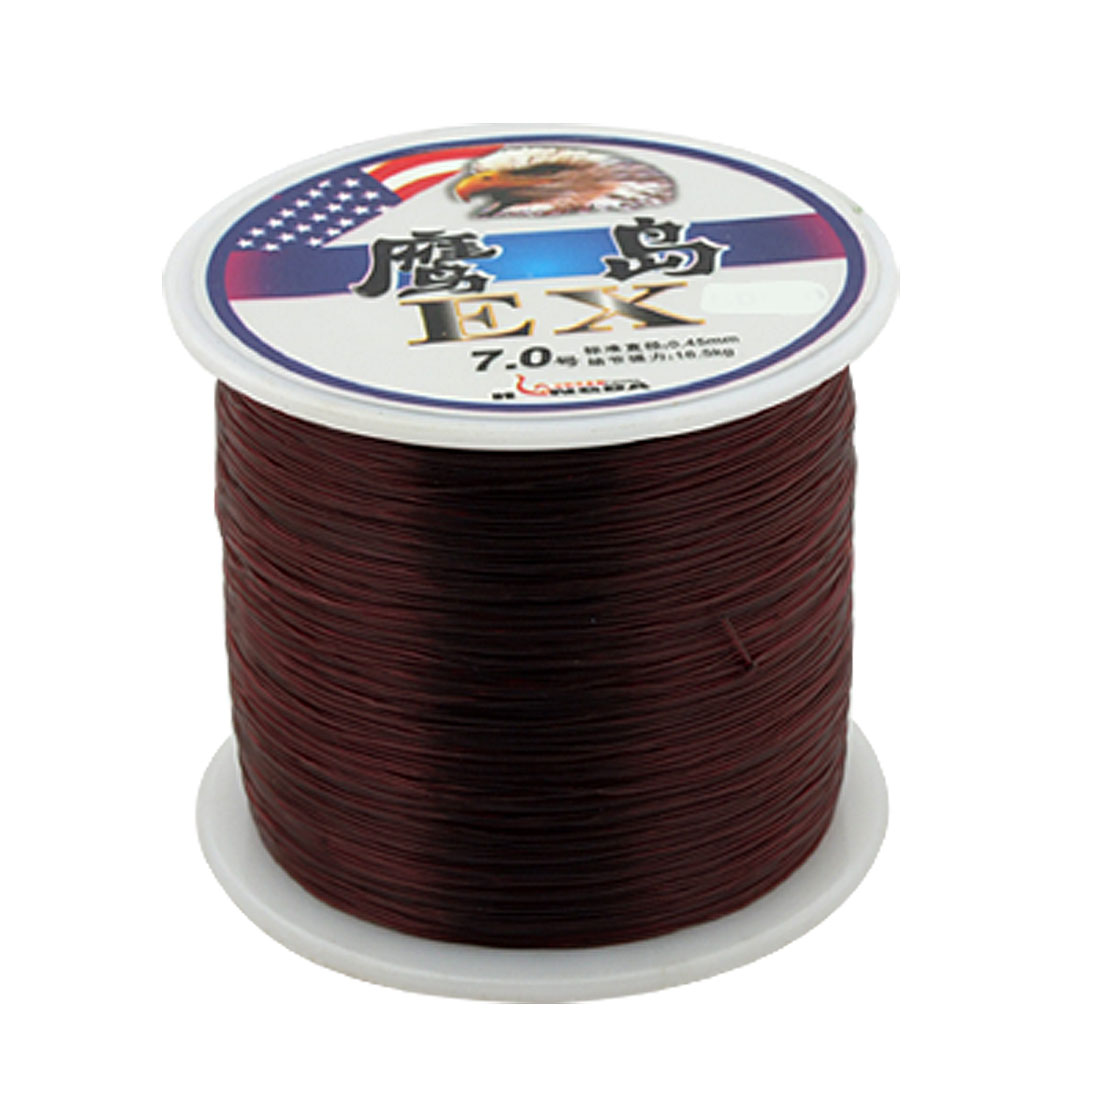 350M Fishing Line Spool String Size 0.45mm